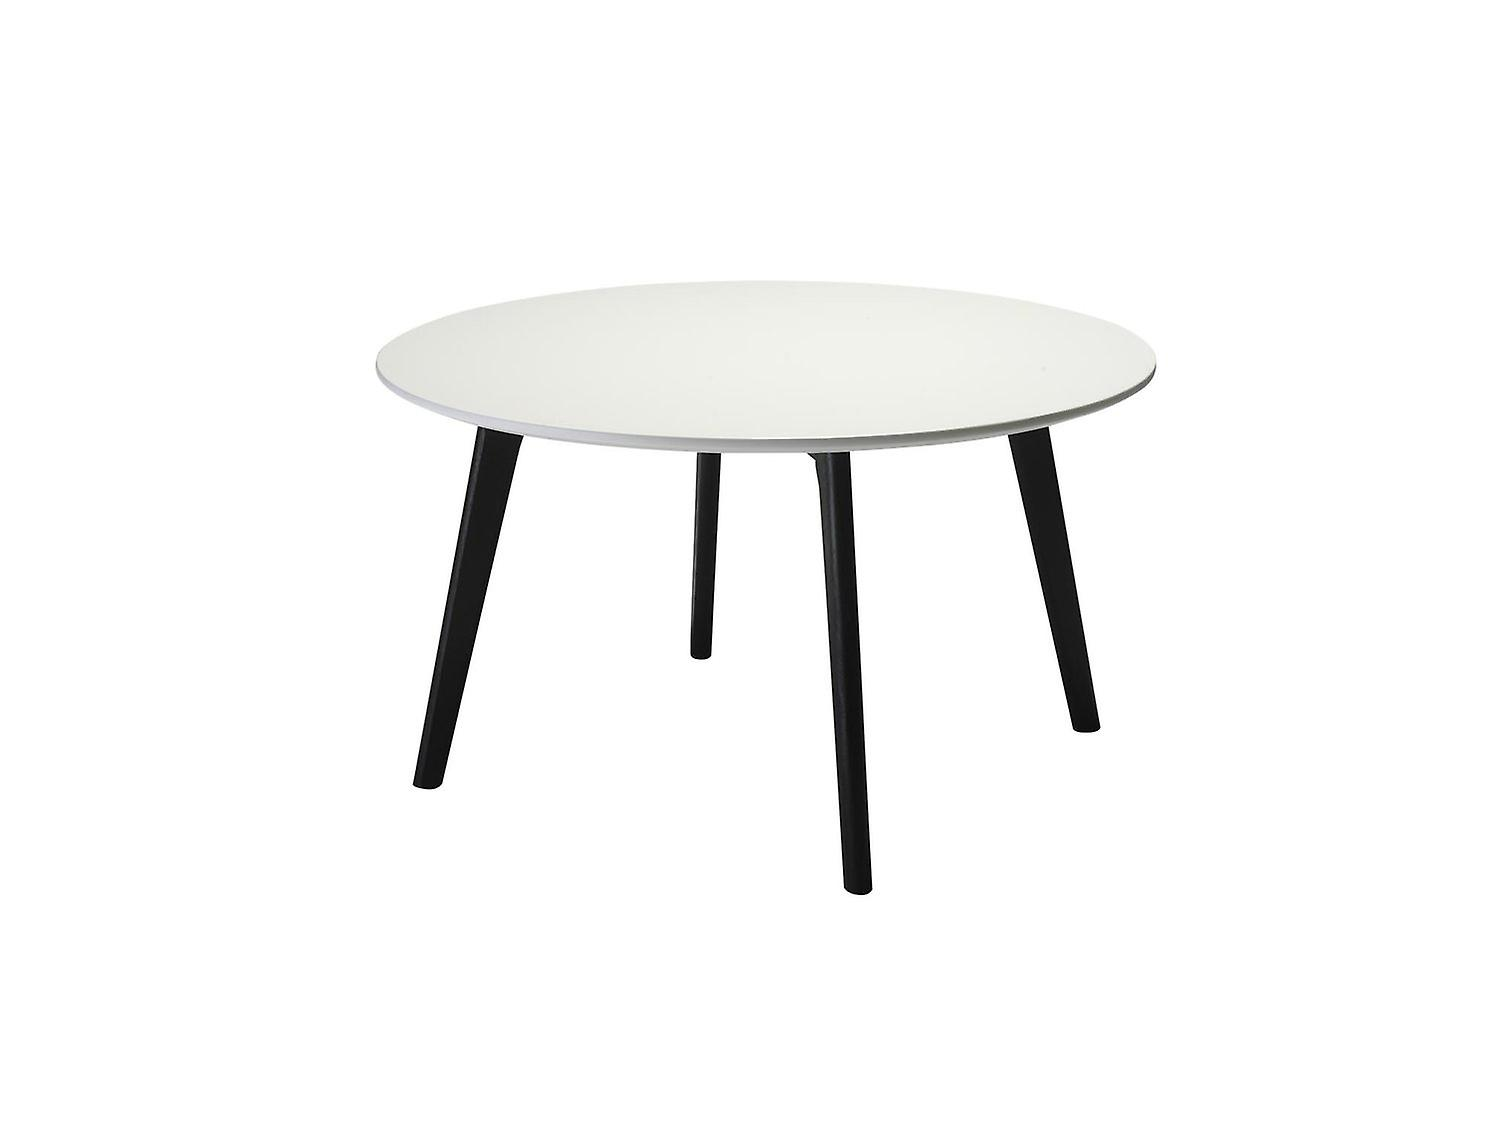 Furnhouse Life Coffee Table, blanc Top, noir boisen Legs, 80x80x45 cm